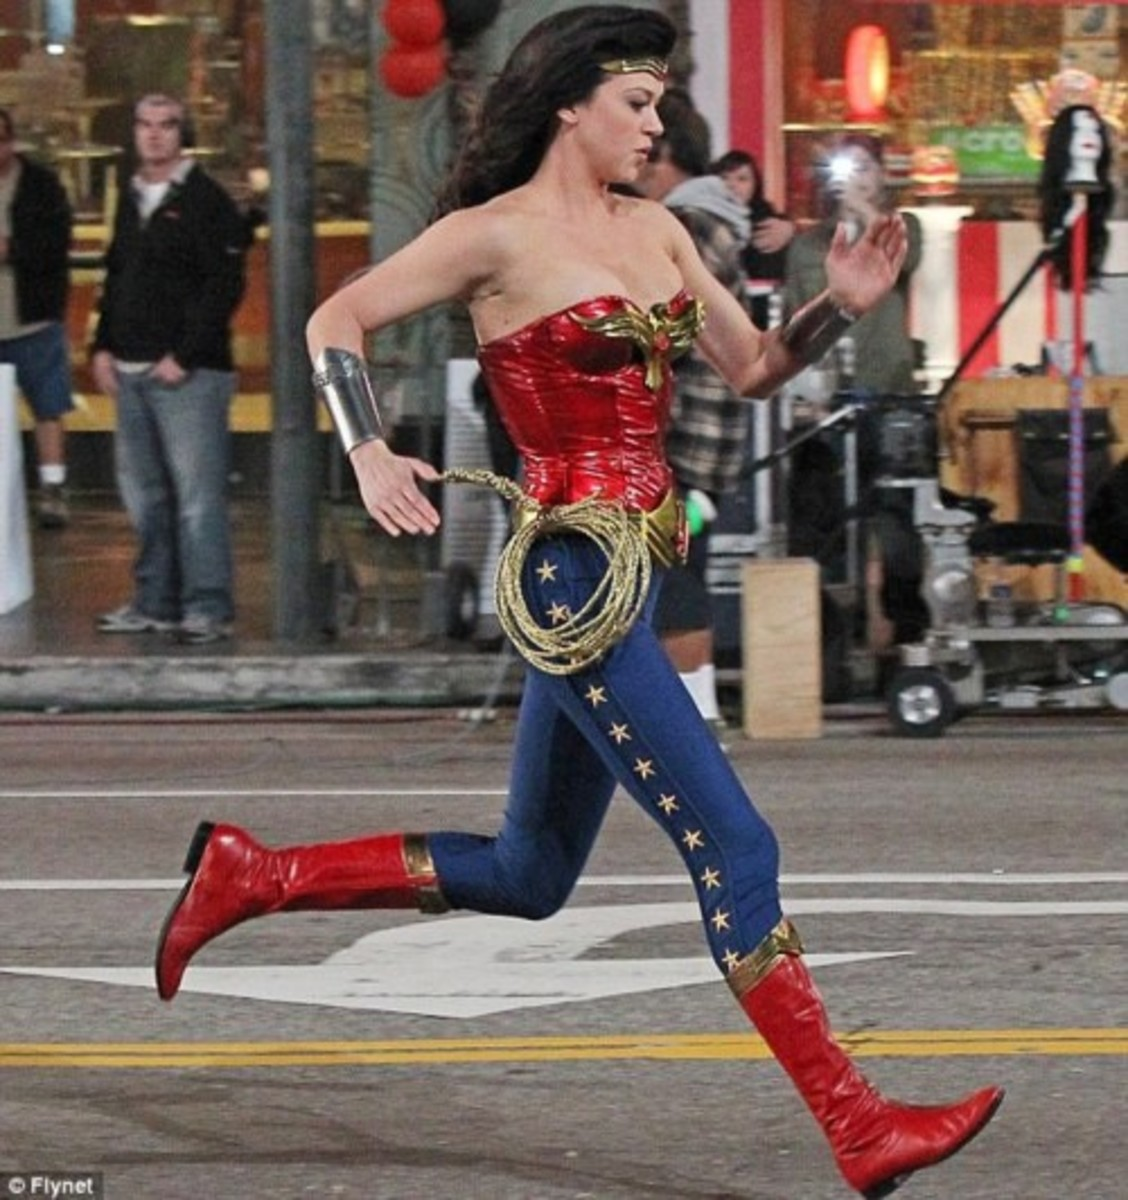 TV Wonder Woman costume in 2011